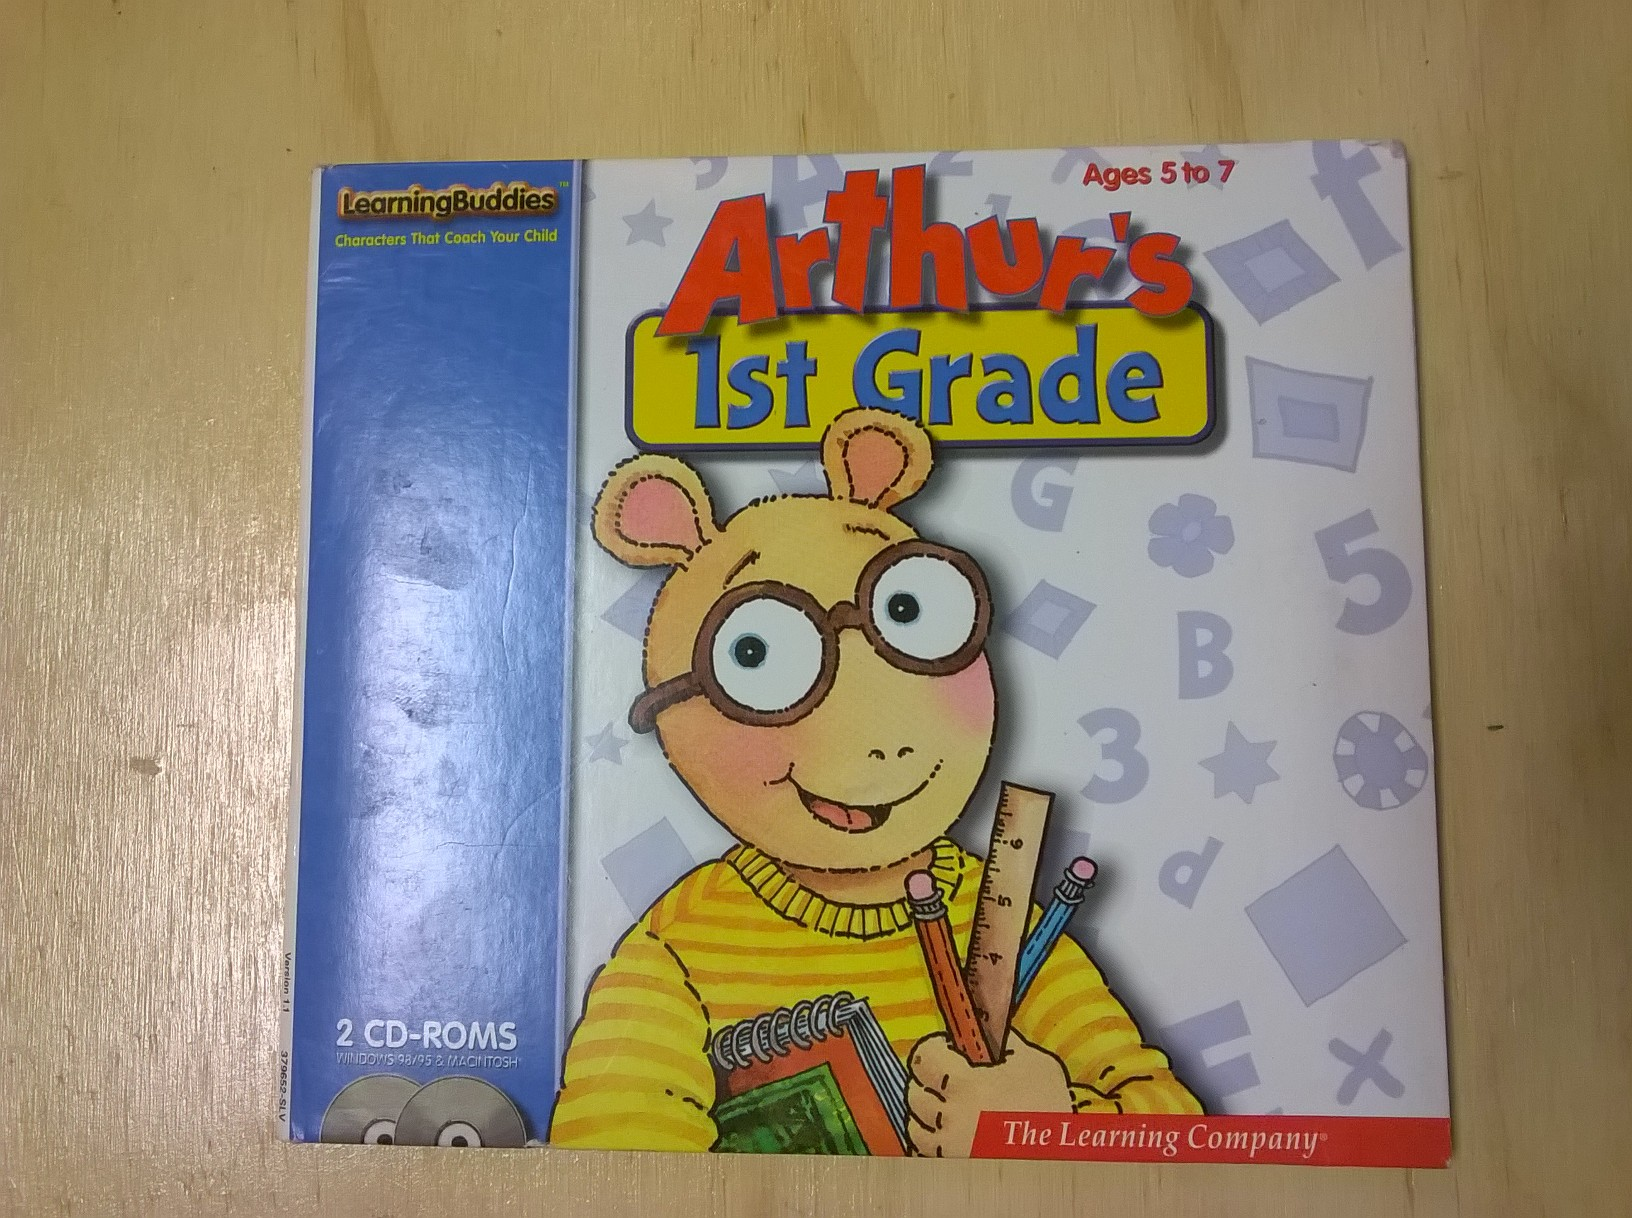 Arthur's 1st Grade Age 5 To 7 The Learning Company Software